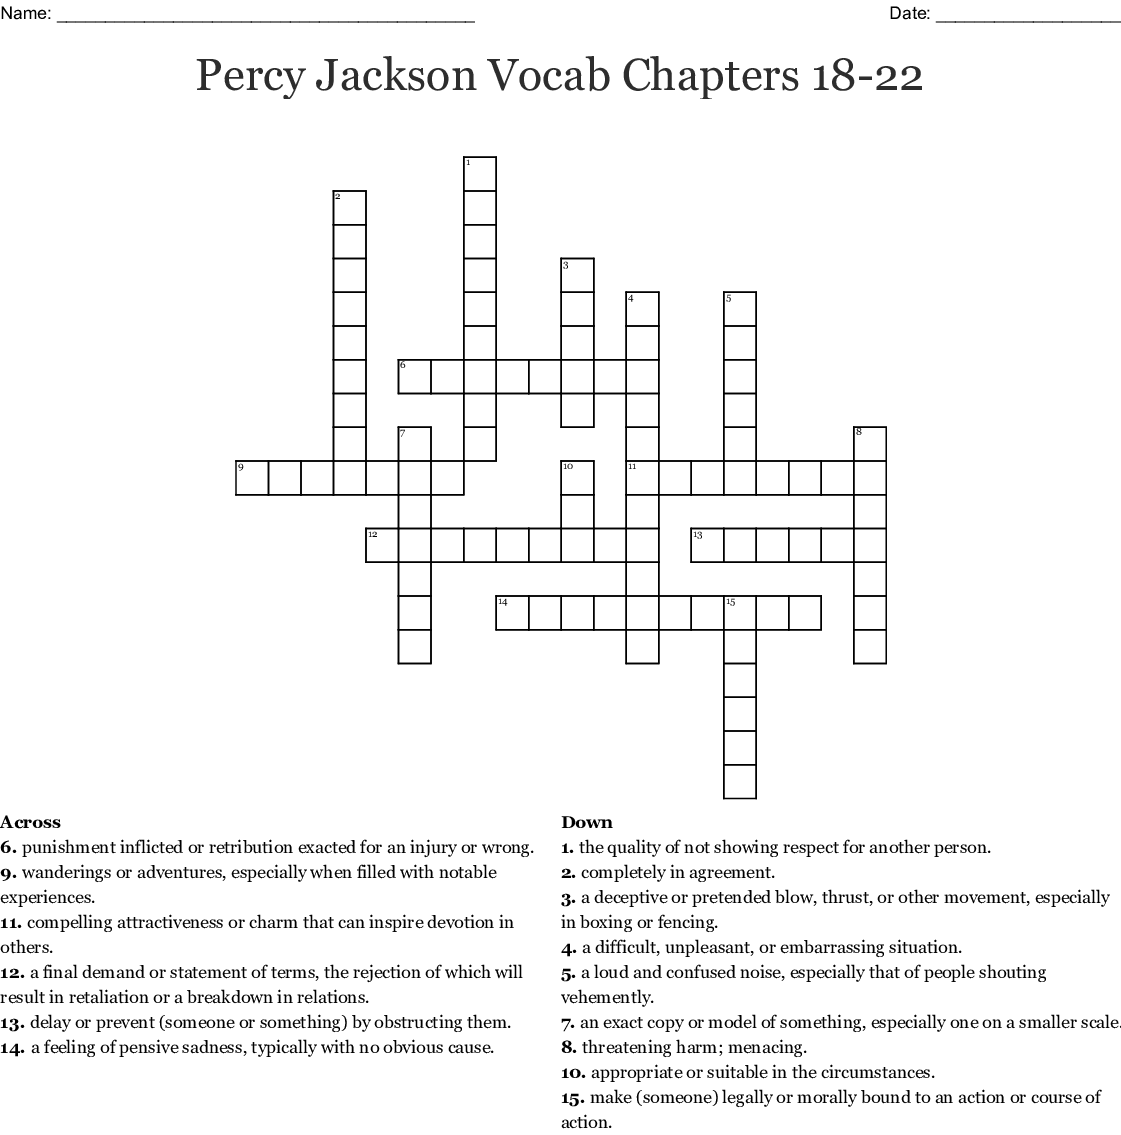 Percy Jackson Vocab Chapters 18 22 Word Scramble